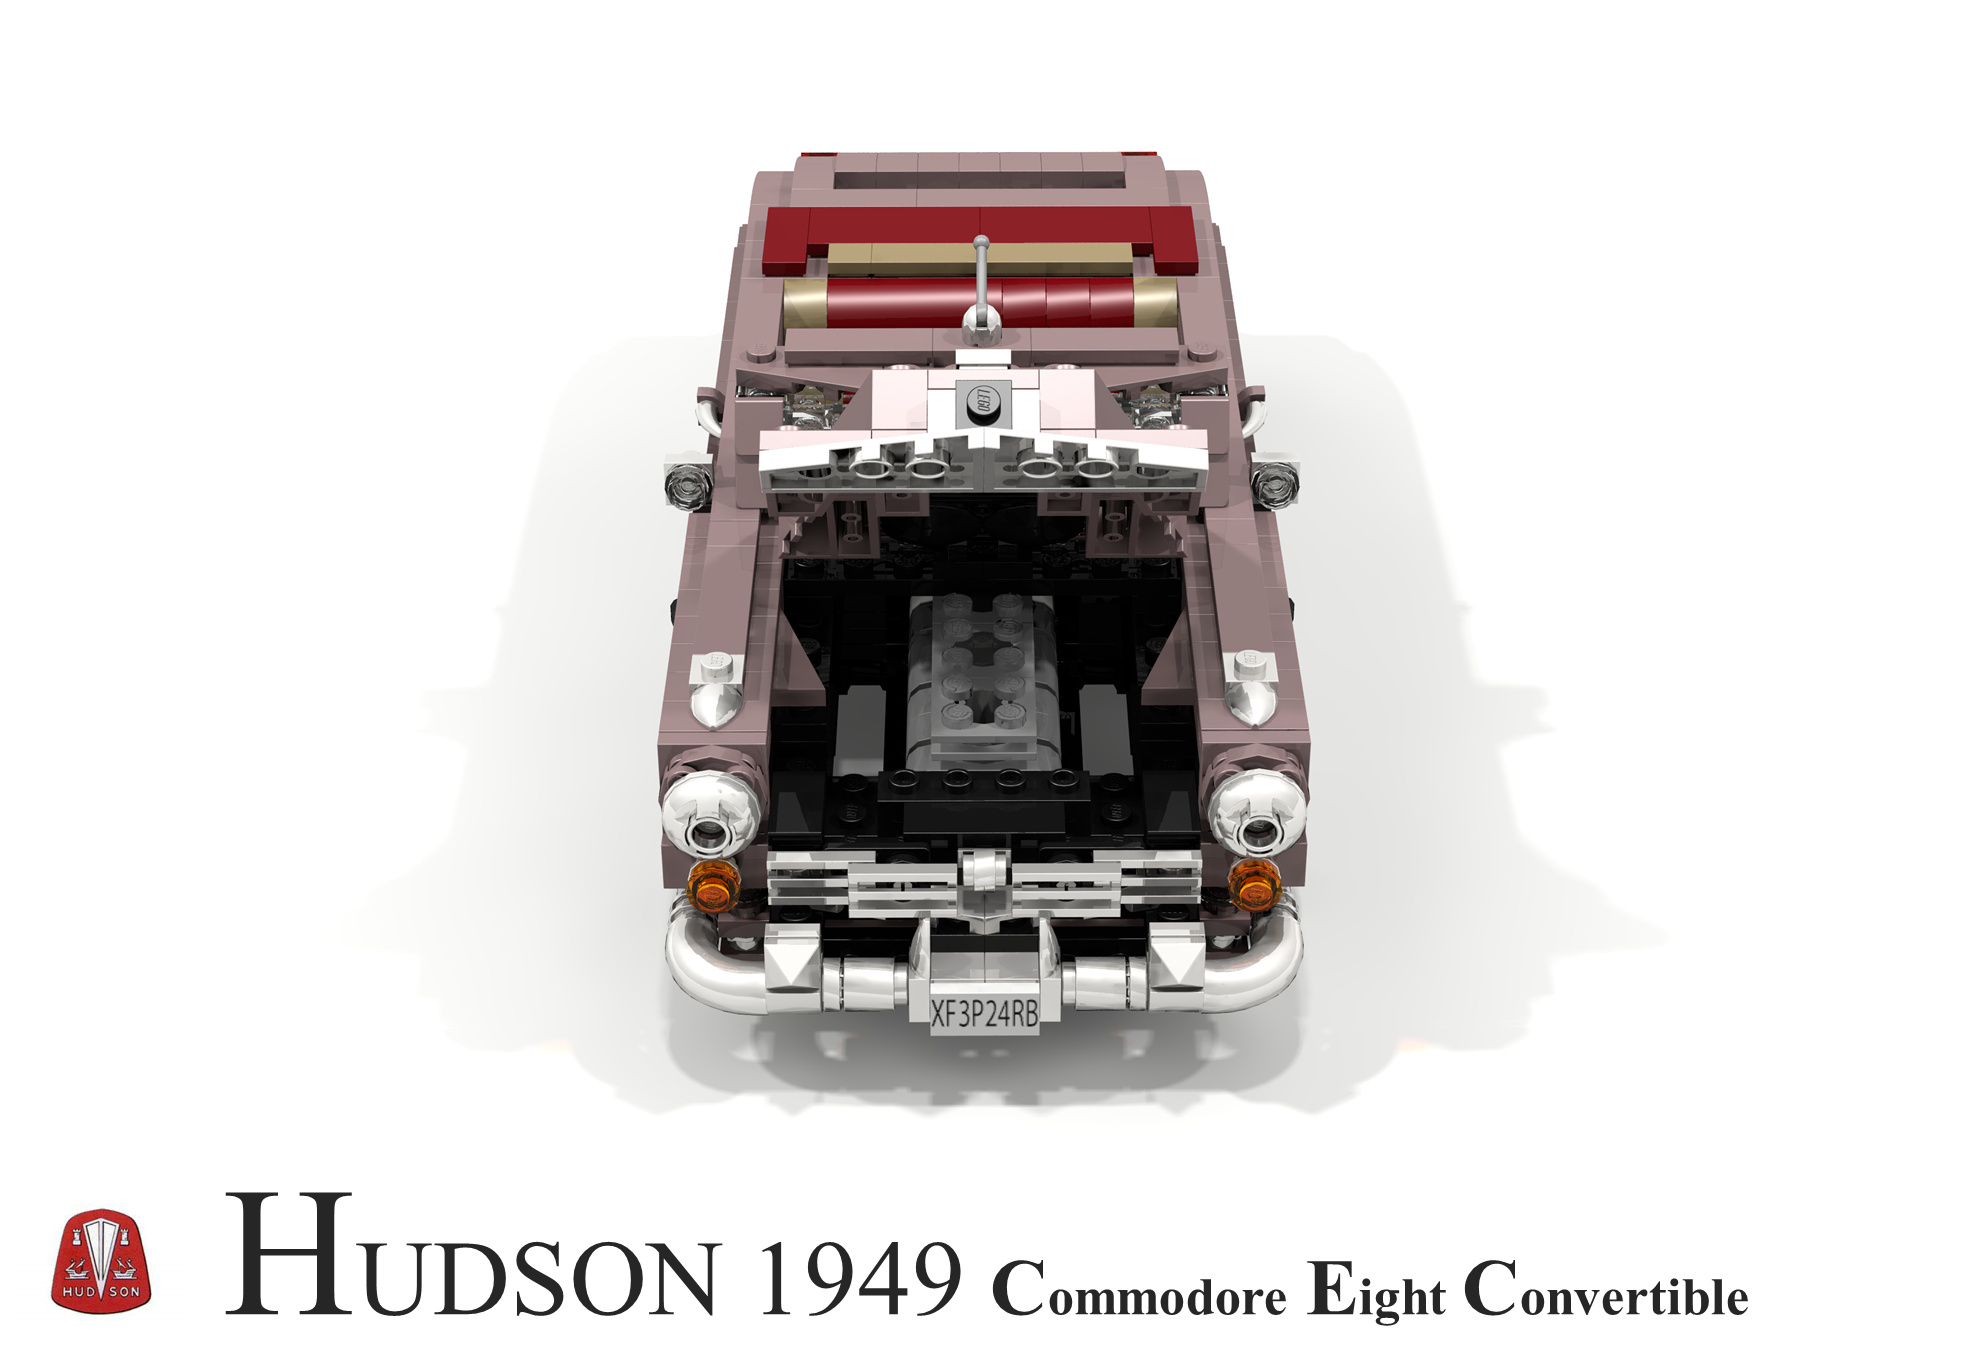 hudson_1949_commodore_eight_convertible_06.png